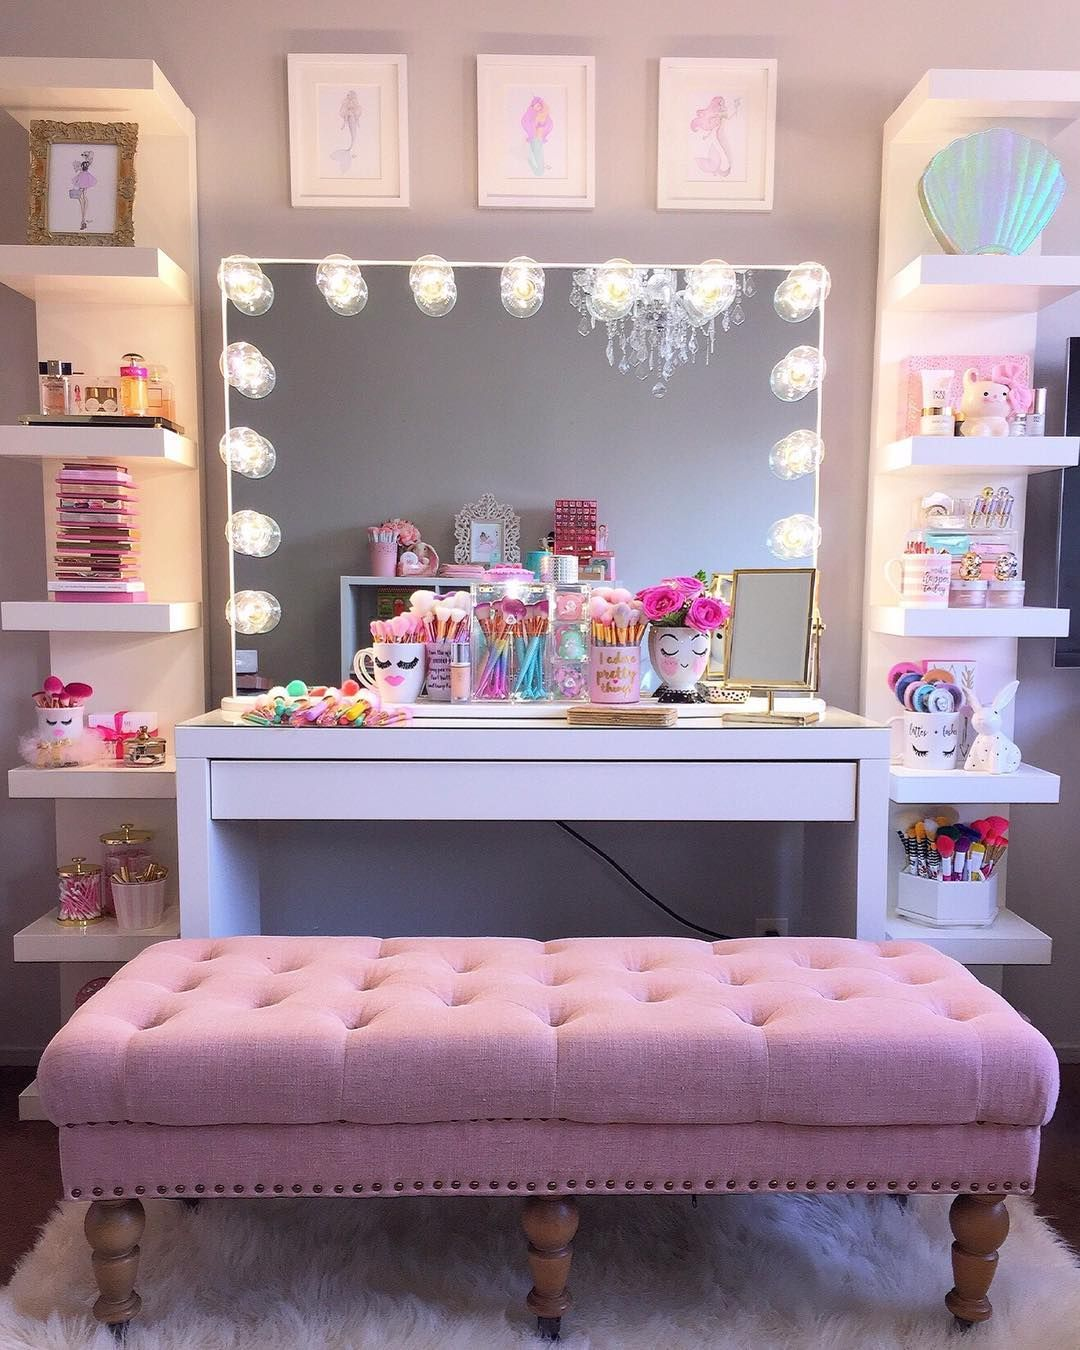 Diy Makeup Room Ideas Organizer Storage And Decorating